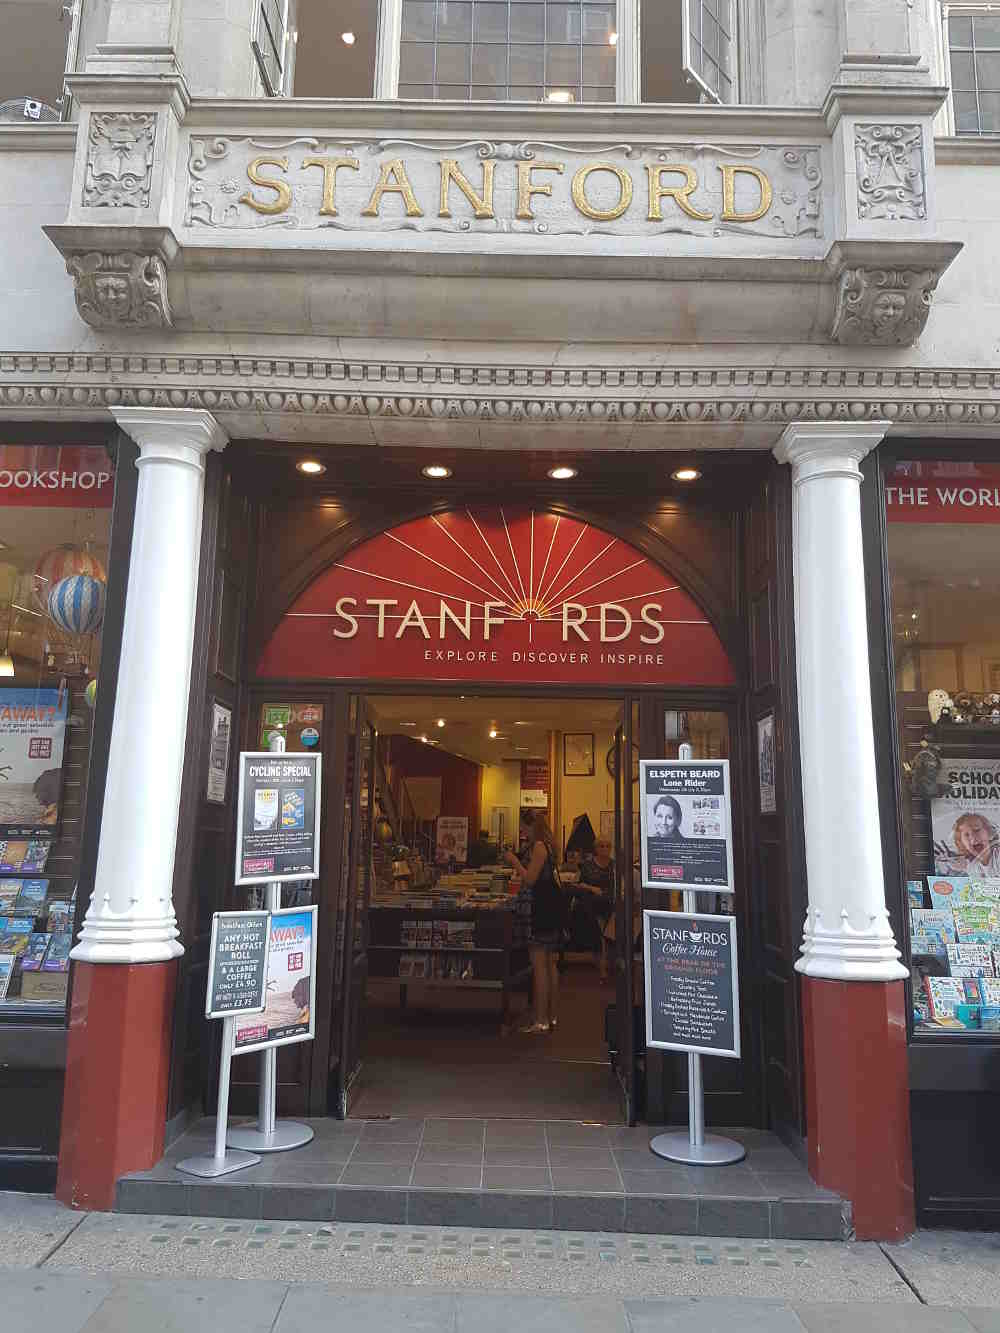 Covent Garden in one day, things to do in Covent Garden, guide to Covent Garden, Stanfords, travel bookshop London